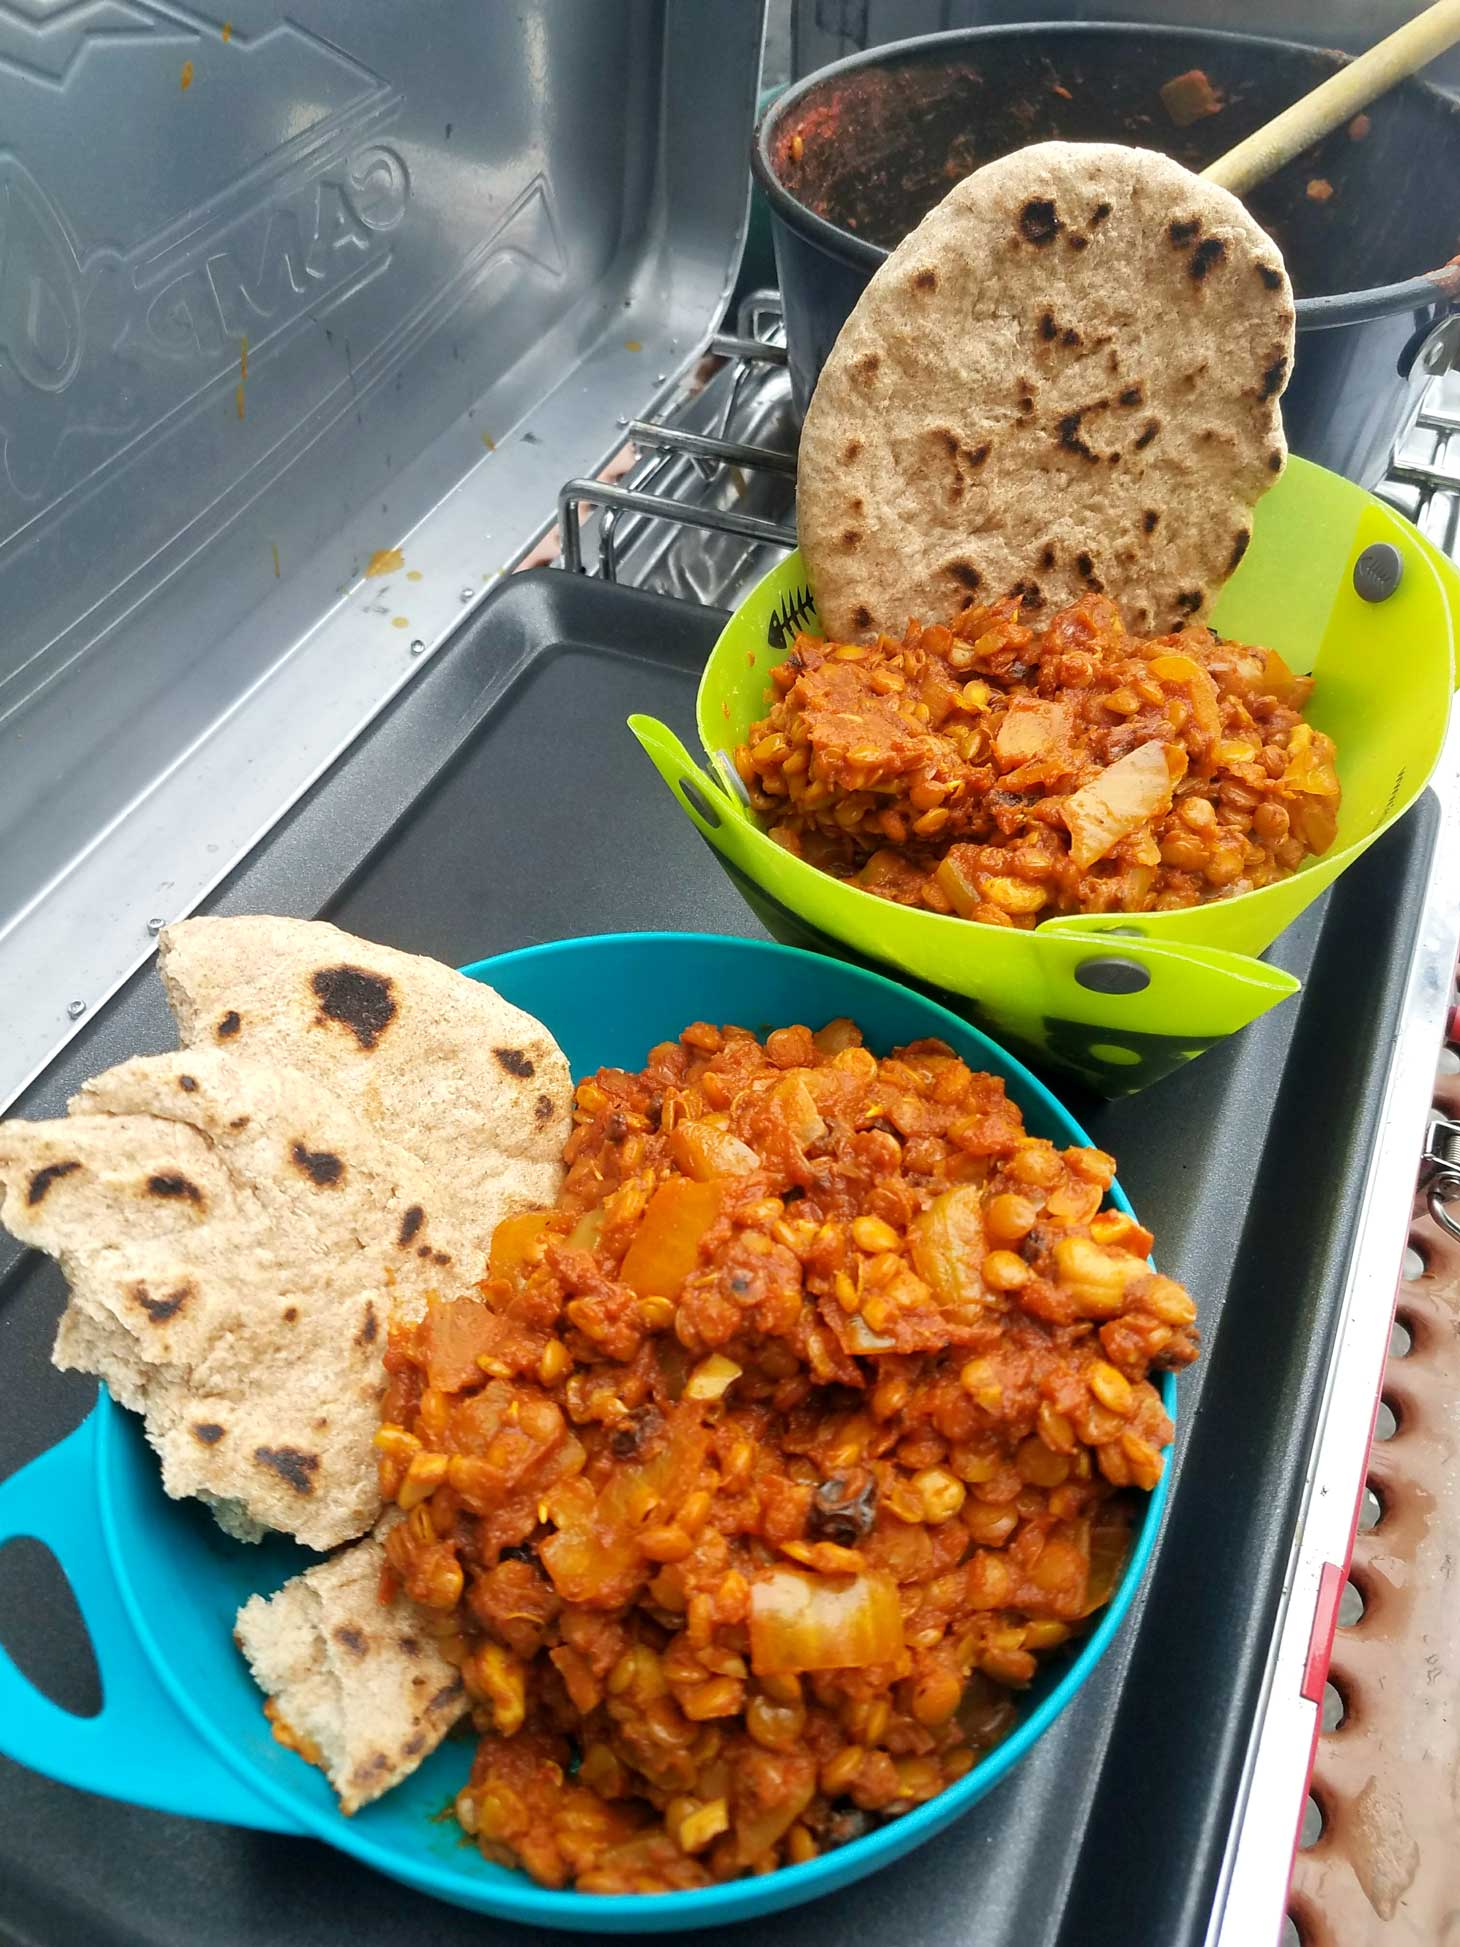 Lentil dhal in a bowl with roti